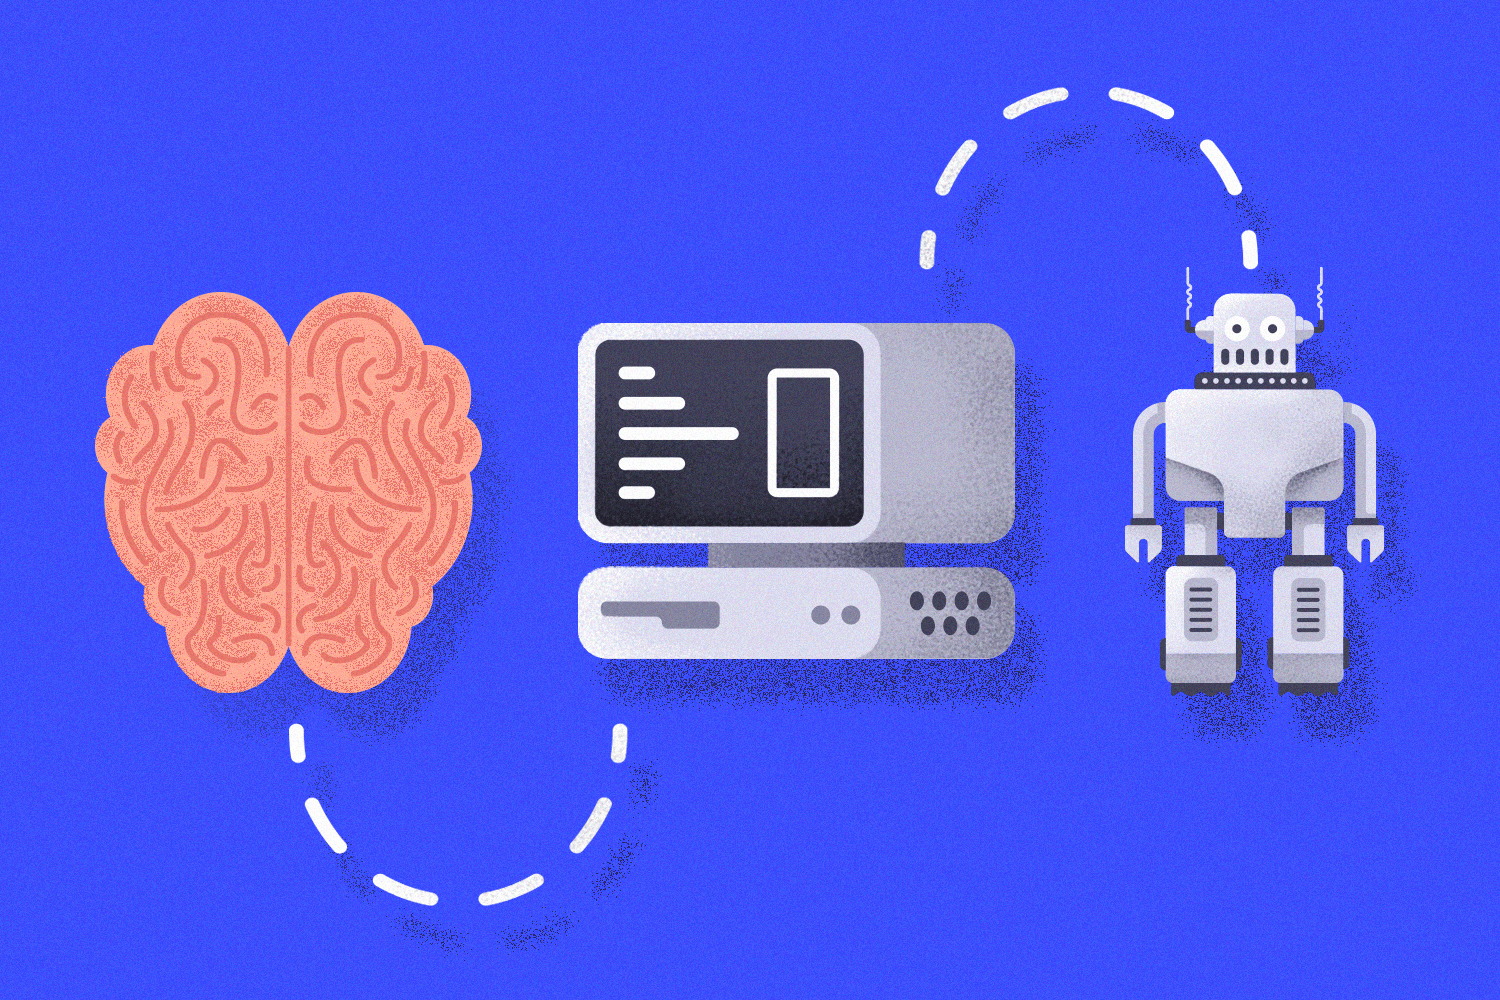 Are You Ready For Technology To Connect With Your Brain?